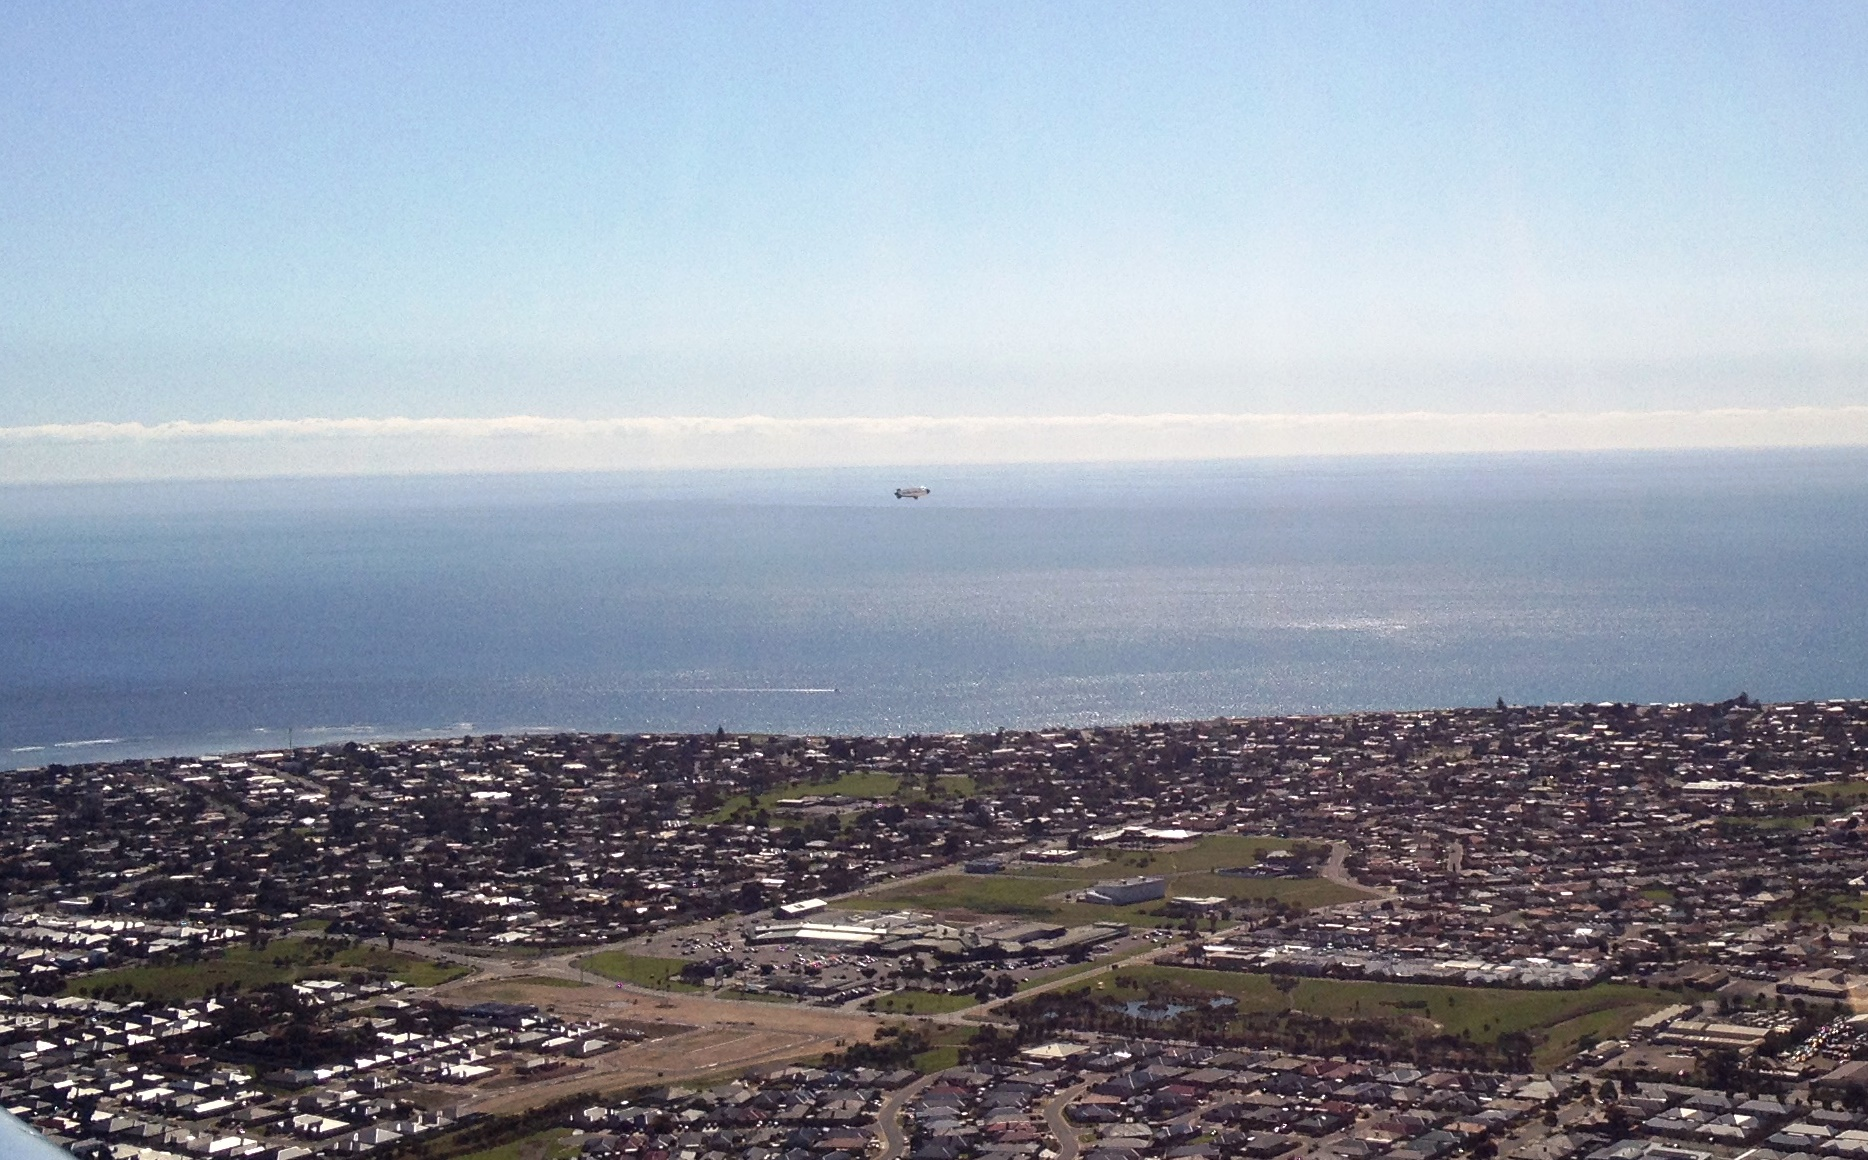 Richo_blimp_over_aldinga.jpg